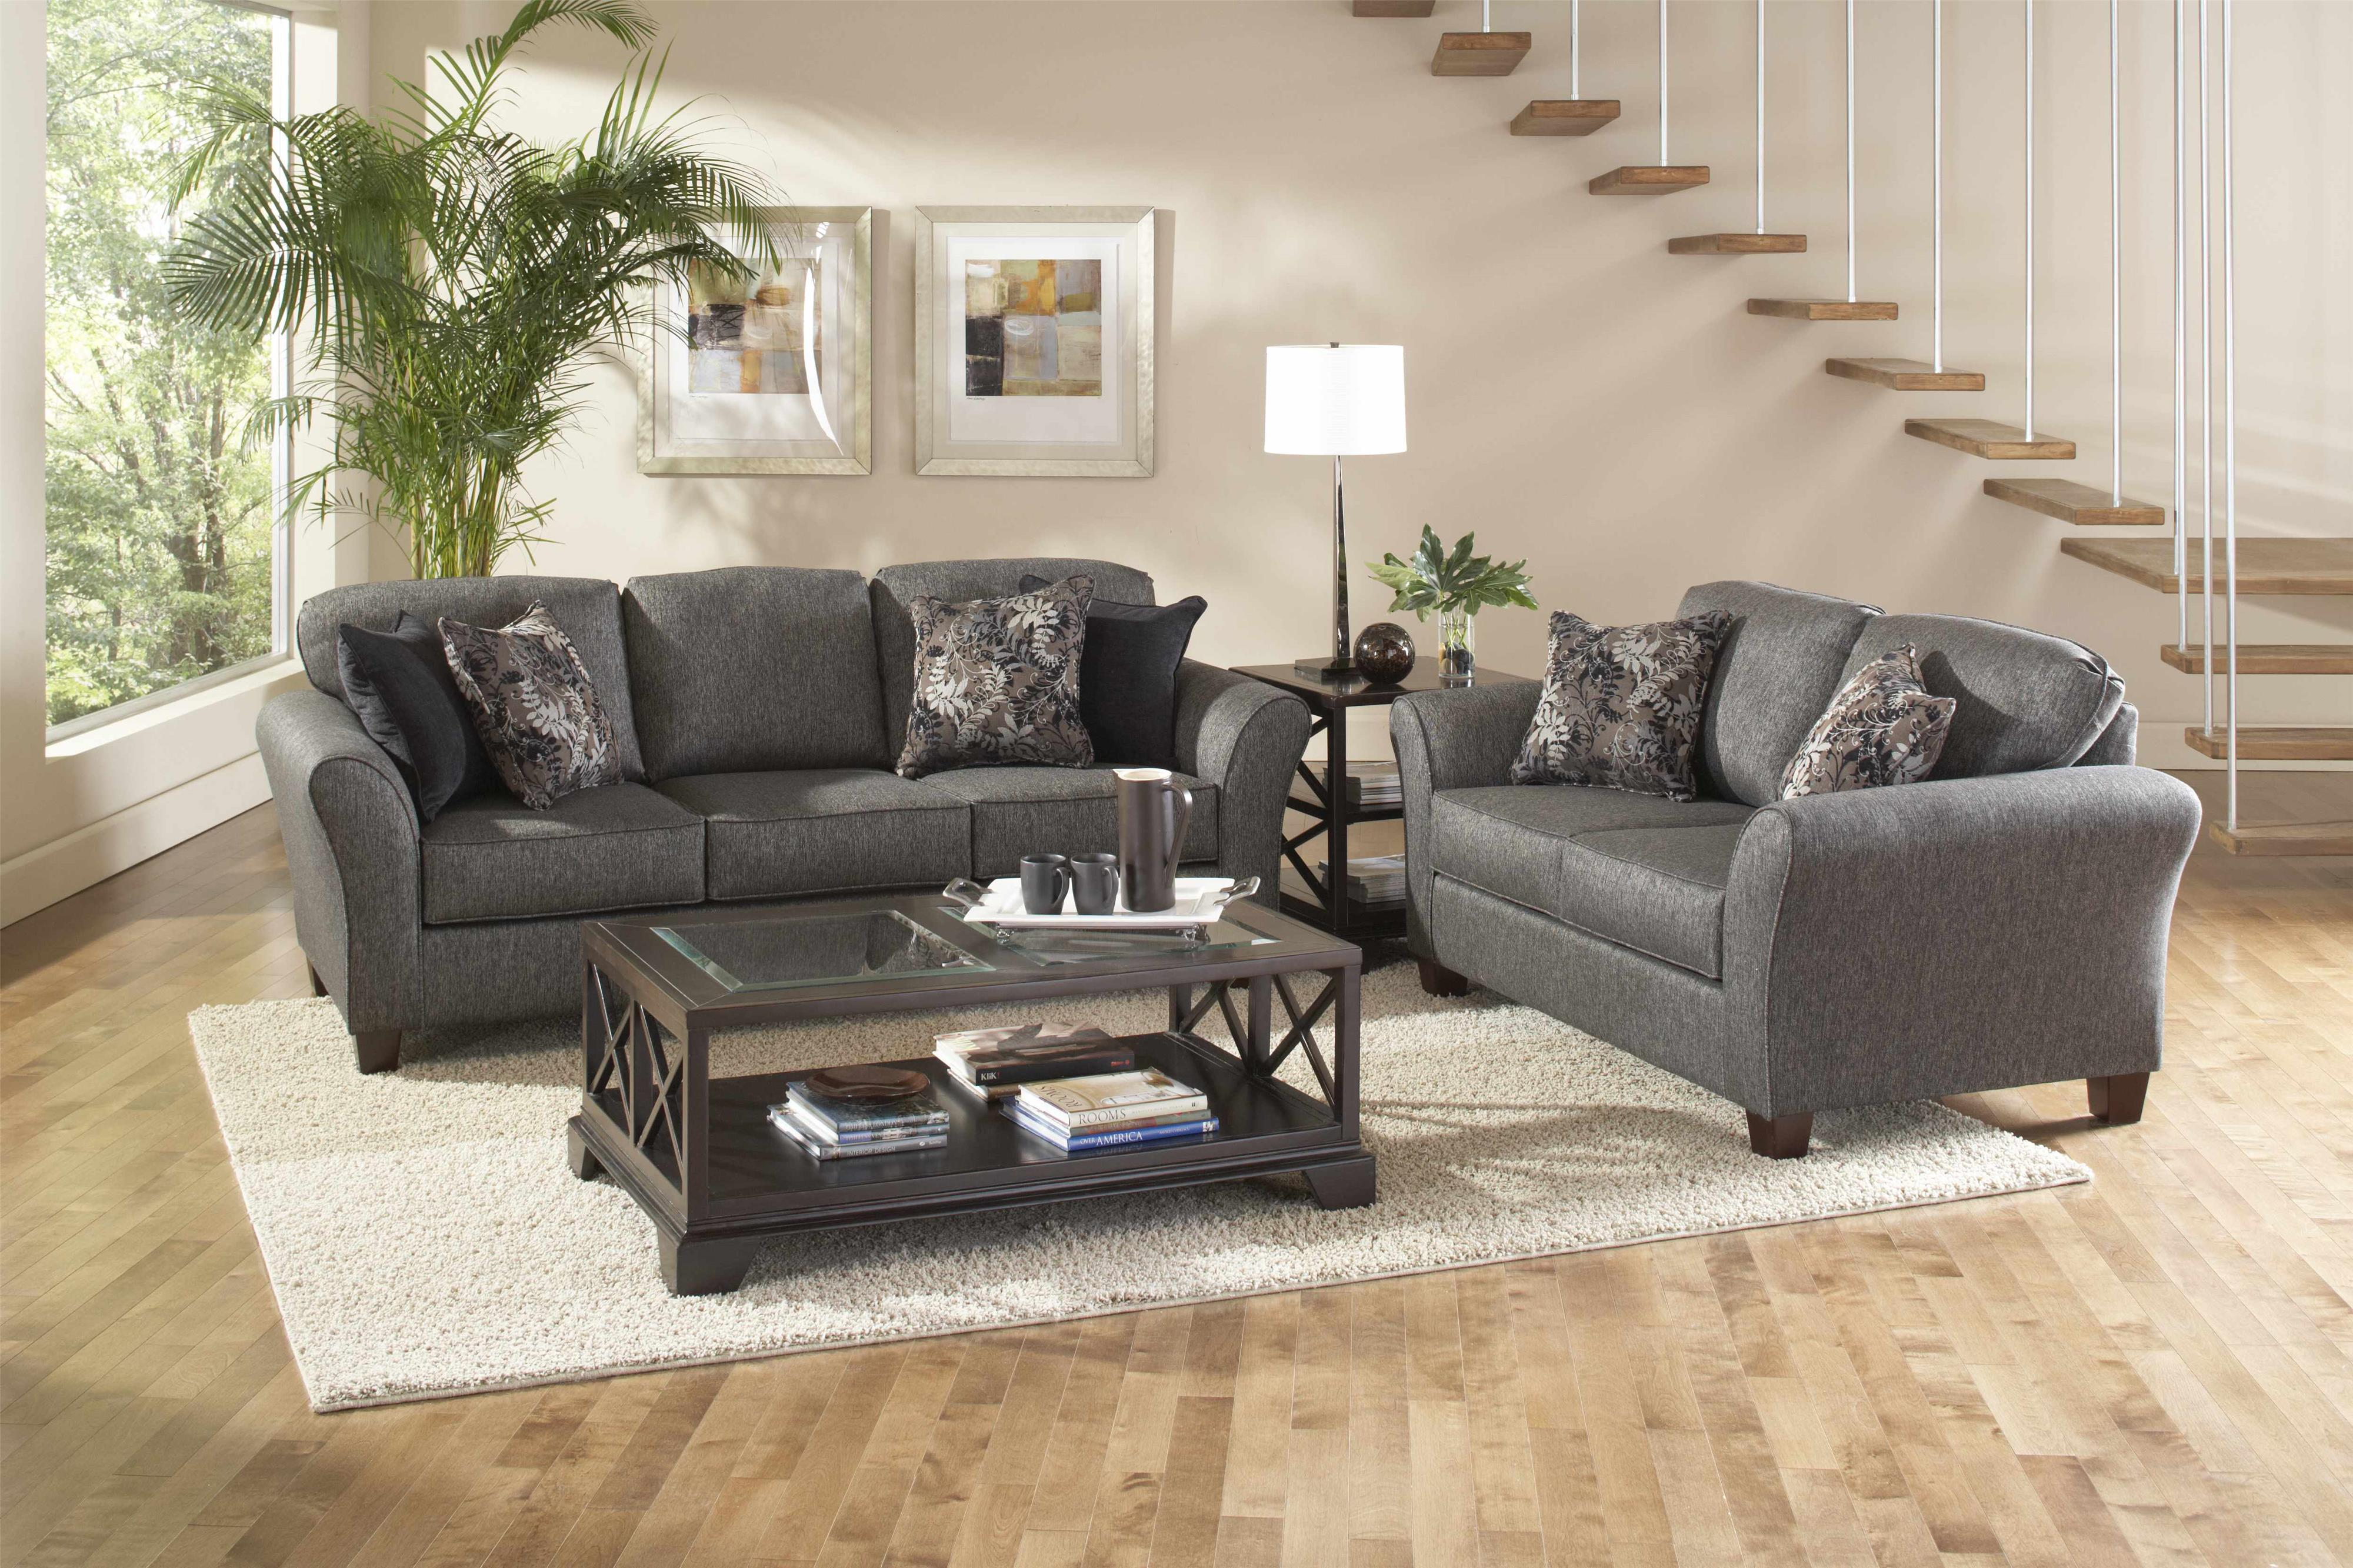 Serta Upholstery by Hughes 4600 2-Piece Sofa & Love Set - Item Number: 4600